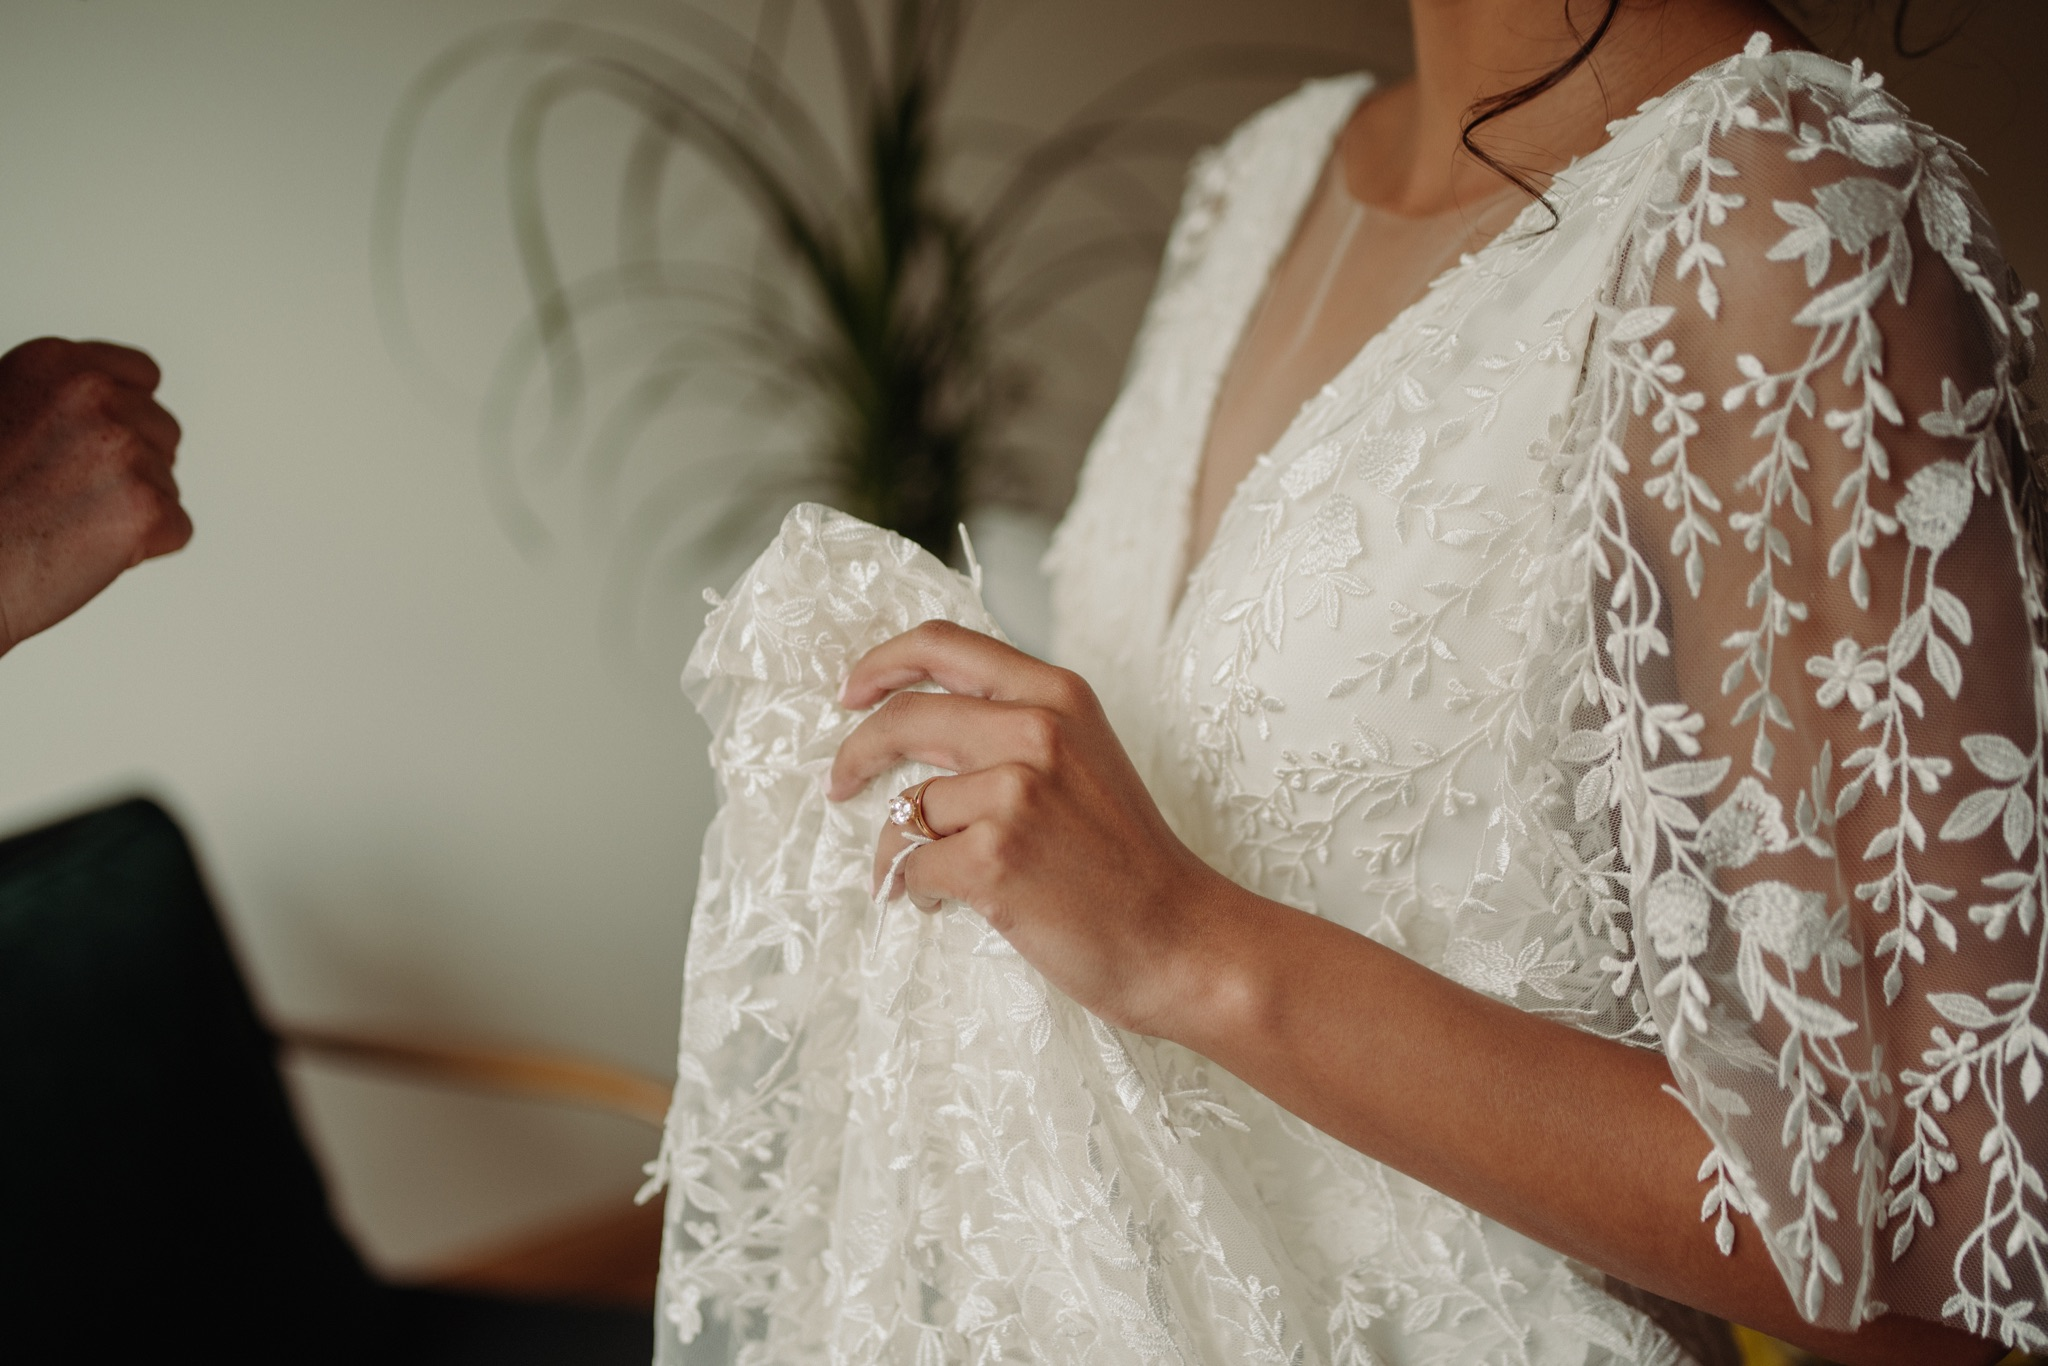 Bride holding up her dress in her hands to her chest